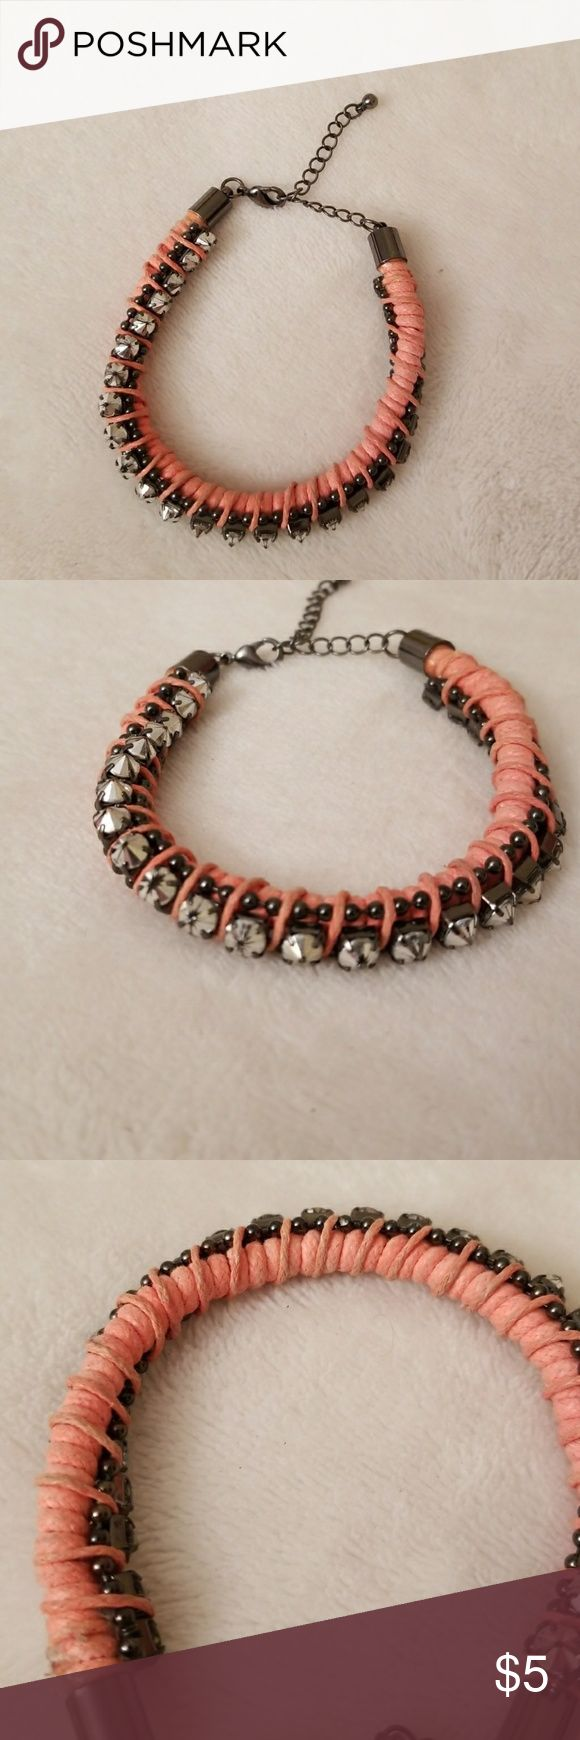 Spike bracelet Coral spike bracelet, worn a few times but in good condition. Slight discoloration and wear on spikes pictured. Pretty sure it's from American Eagle. Jewelry Bracelets